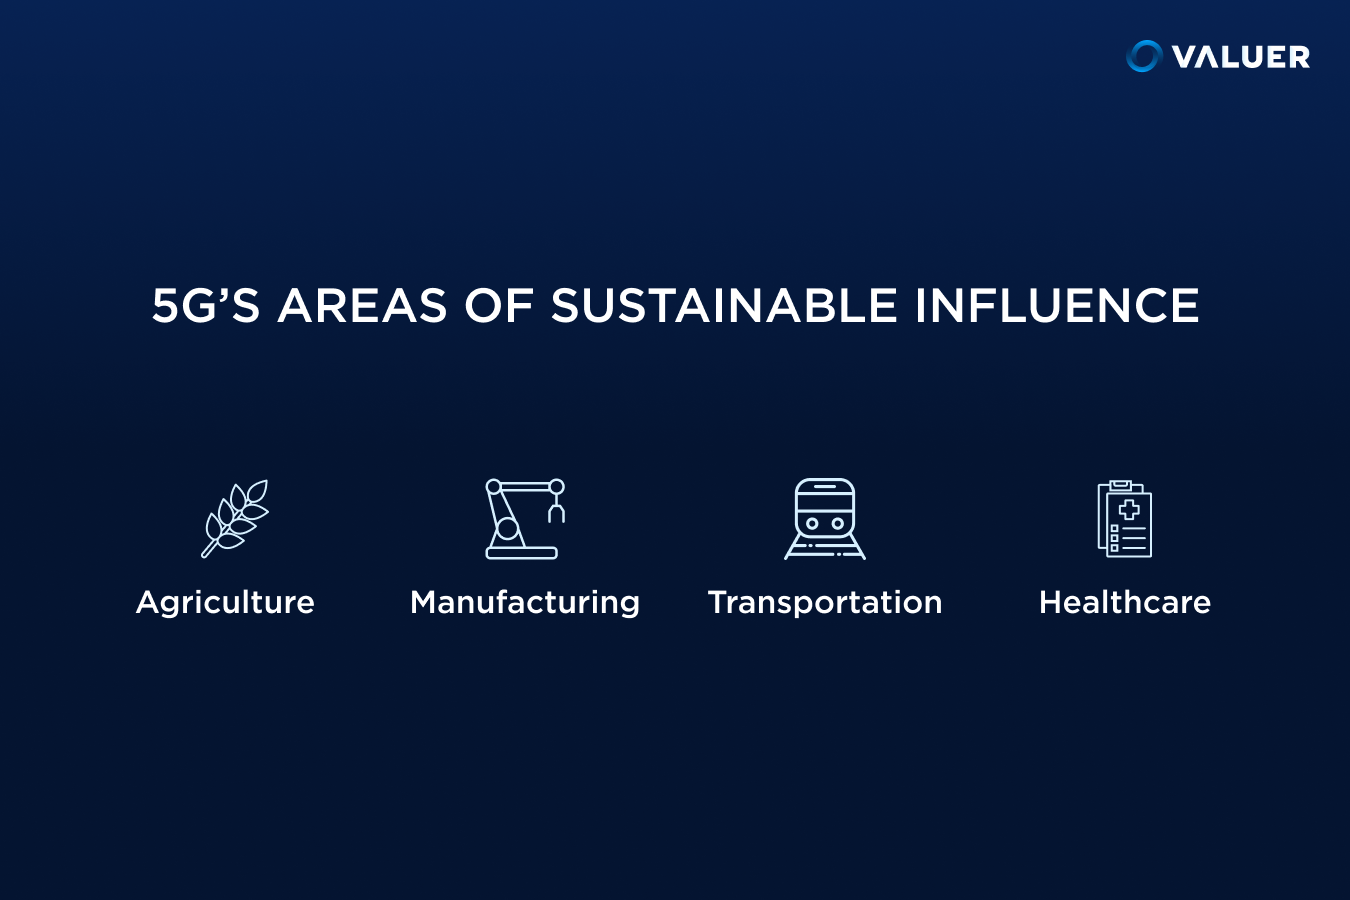 5G's areas of sustainable influence in agriculture, manufacturing, transportation, and healthcare